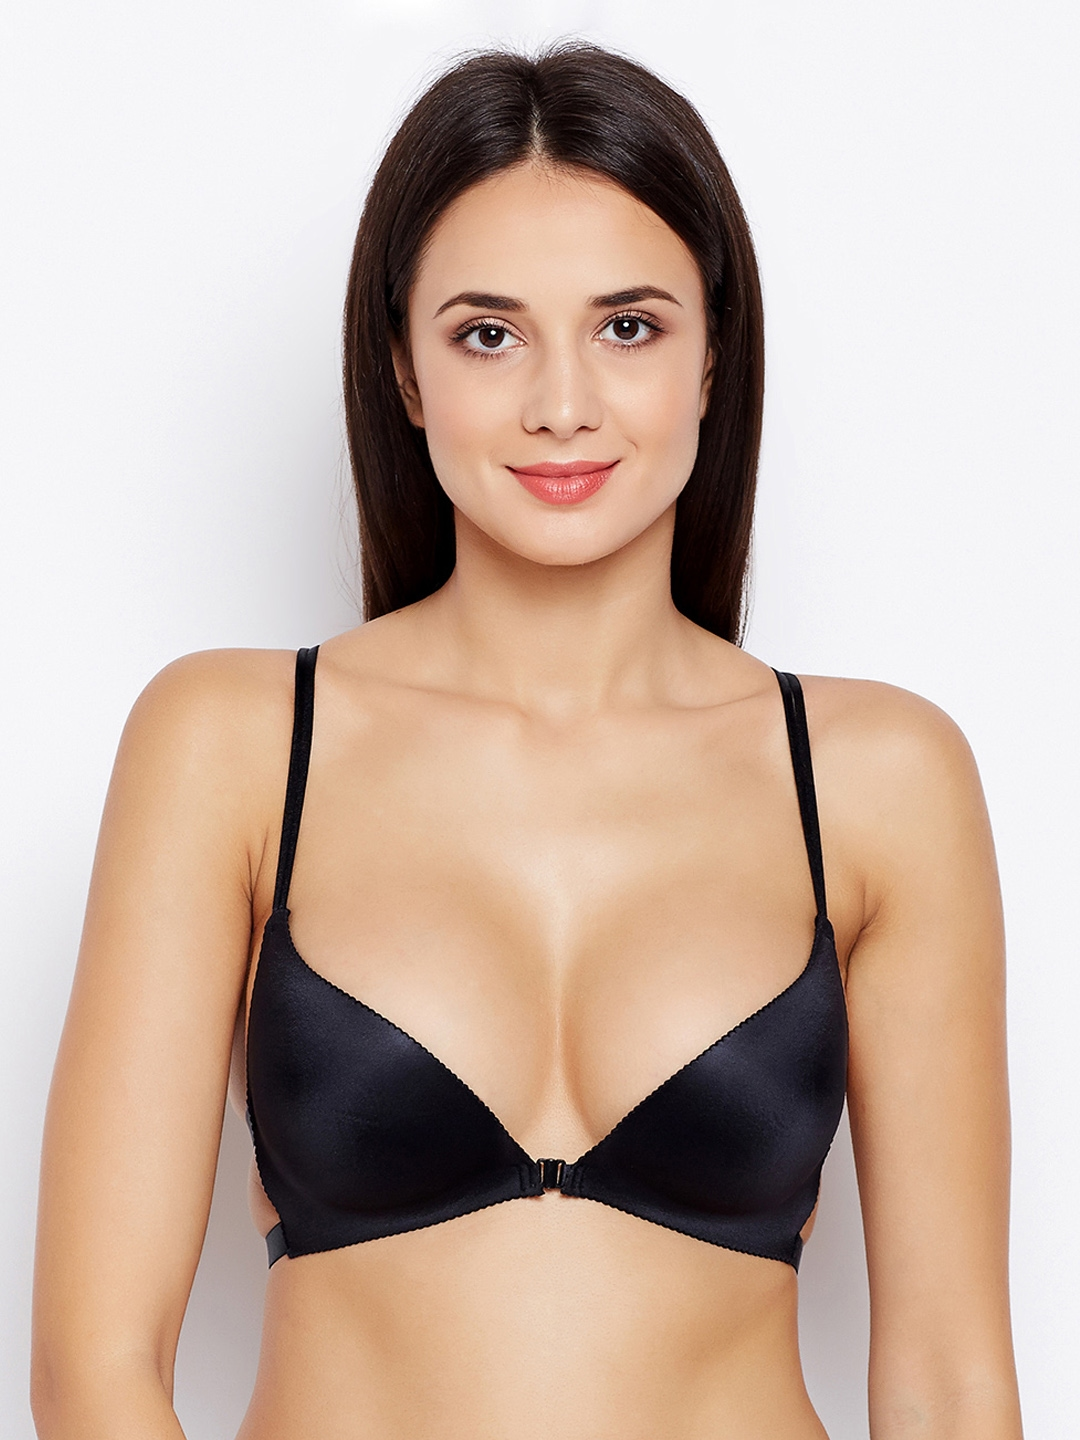 9888bb0fcb660 Golden Girl Black Solid Non-Wired Lightly Padded Bralette Bra 1209201853